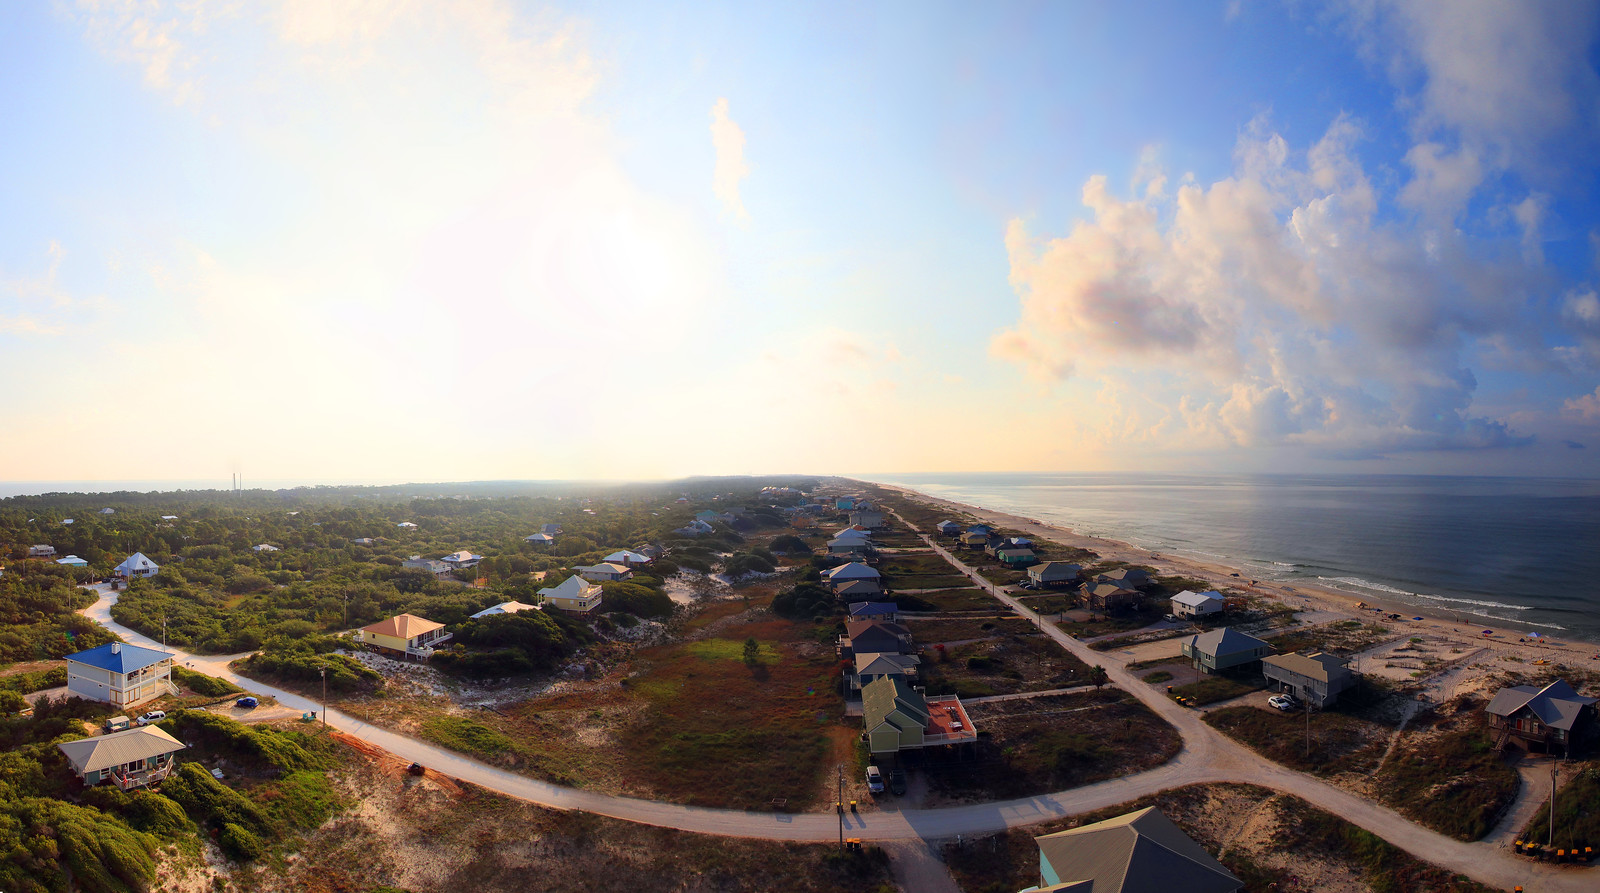 IMAGE: https://photos.smugmug.com/Church-and-Family/Gulf-Shores-2019/i-Q7kN9WV/0/631e38cc/X3/Untitled_Panorama1-X3.jpg